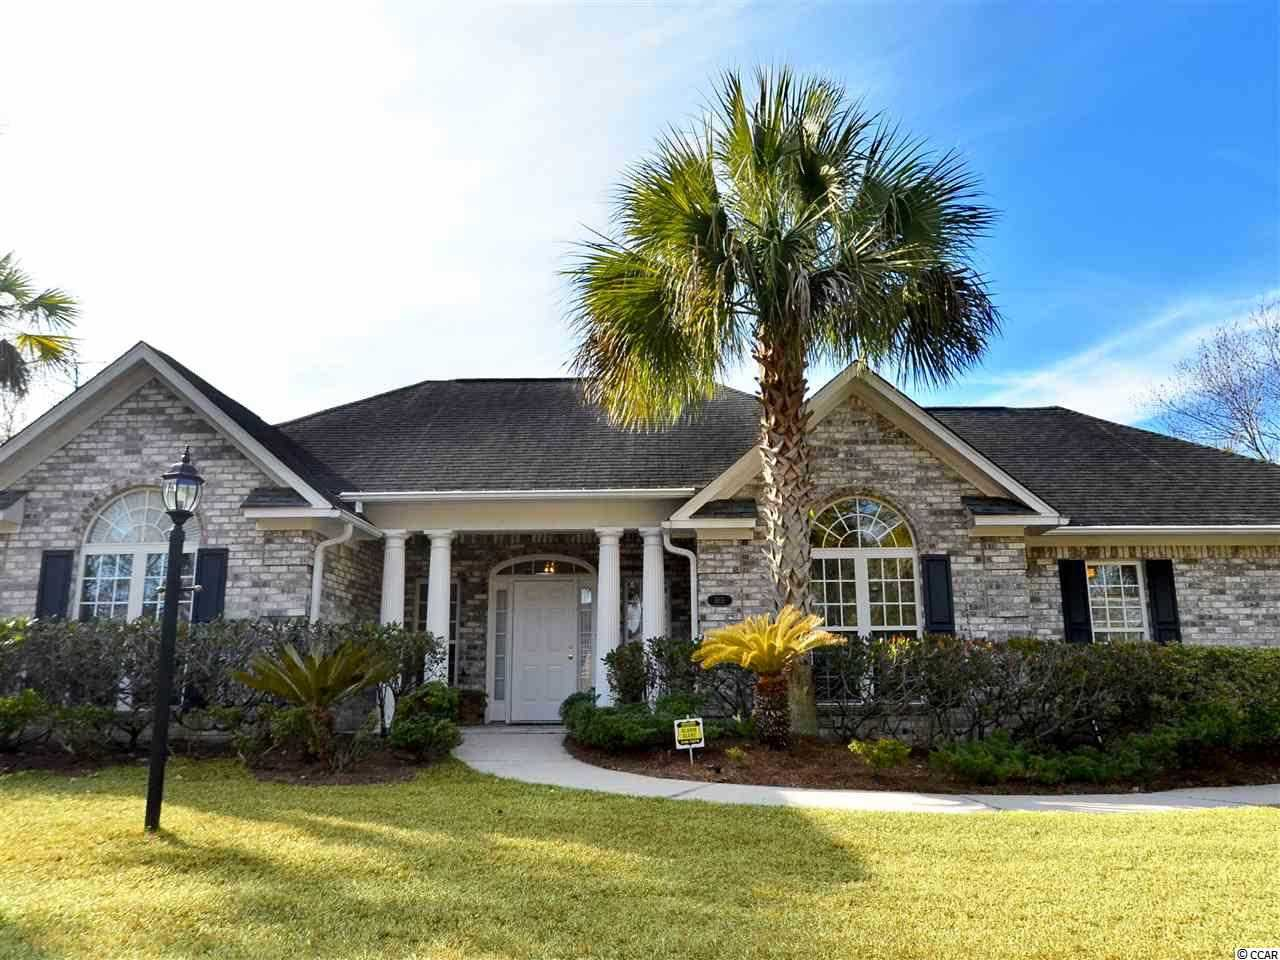 1101 Thomas Ave North Myrtle Beach, SC 29582 | MLS 1800741 Photo 1